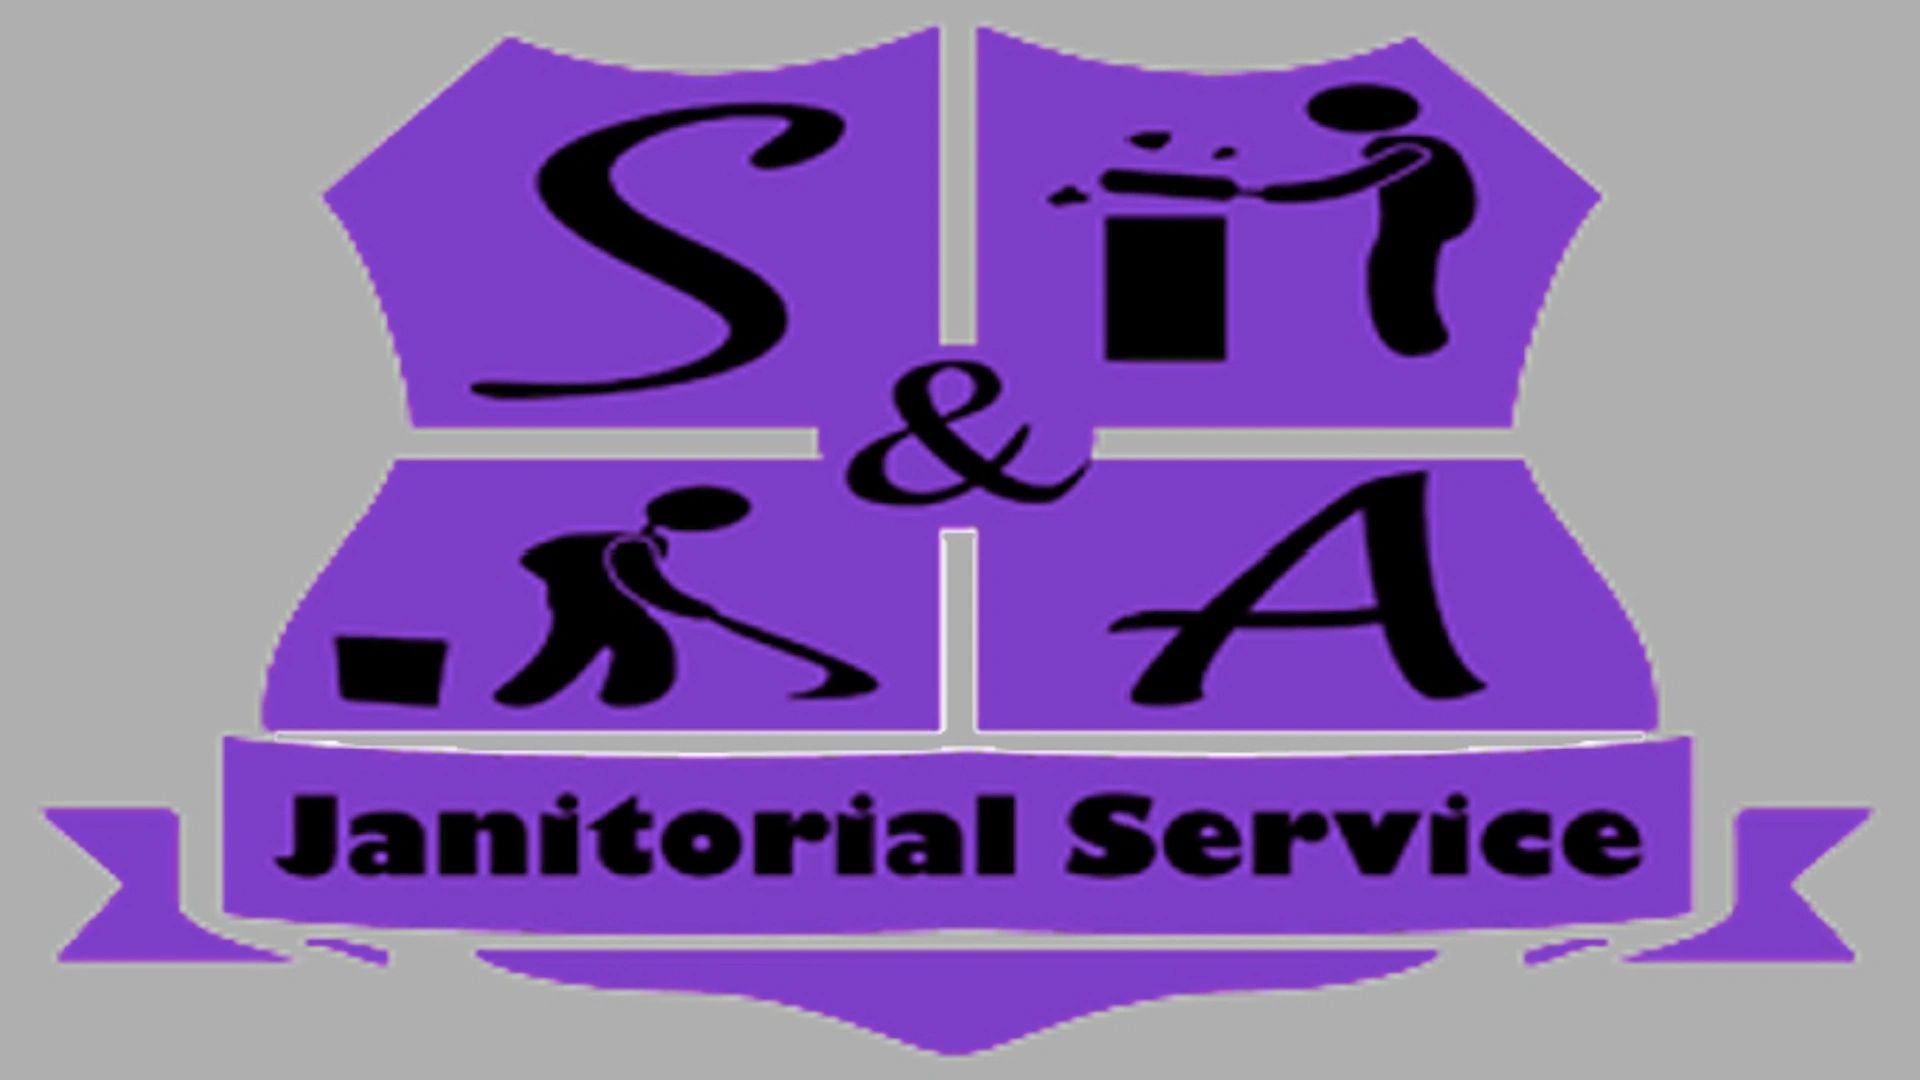 S and A Janitorial Service LLC Commercial cleaning company logo.